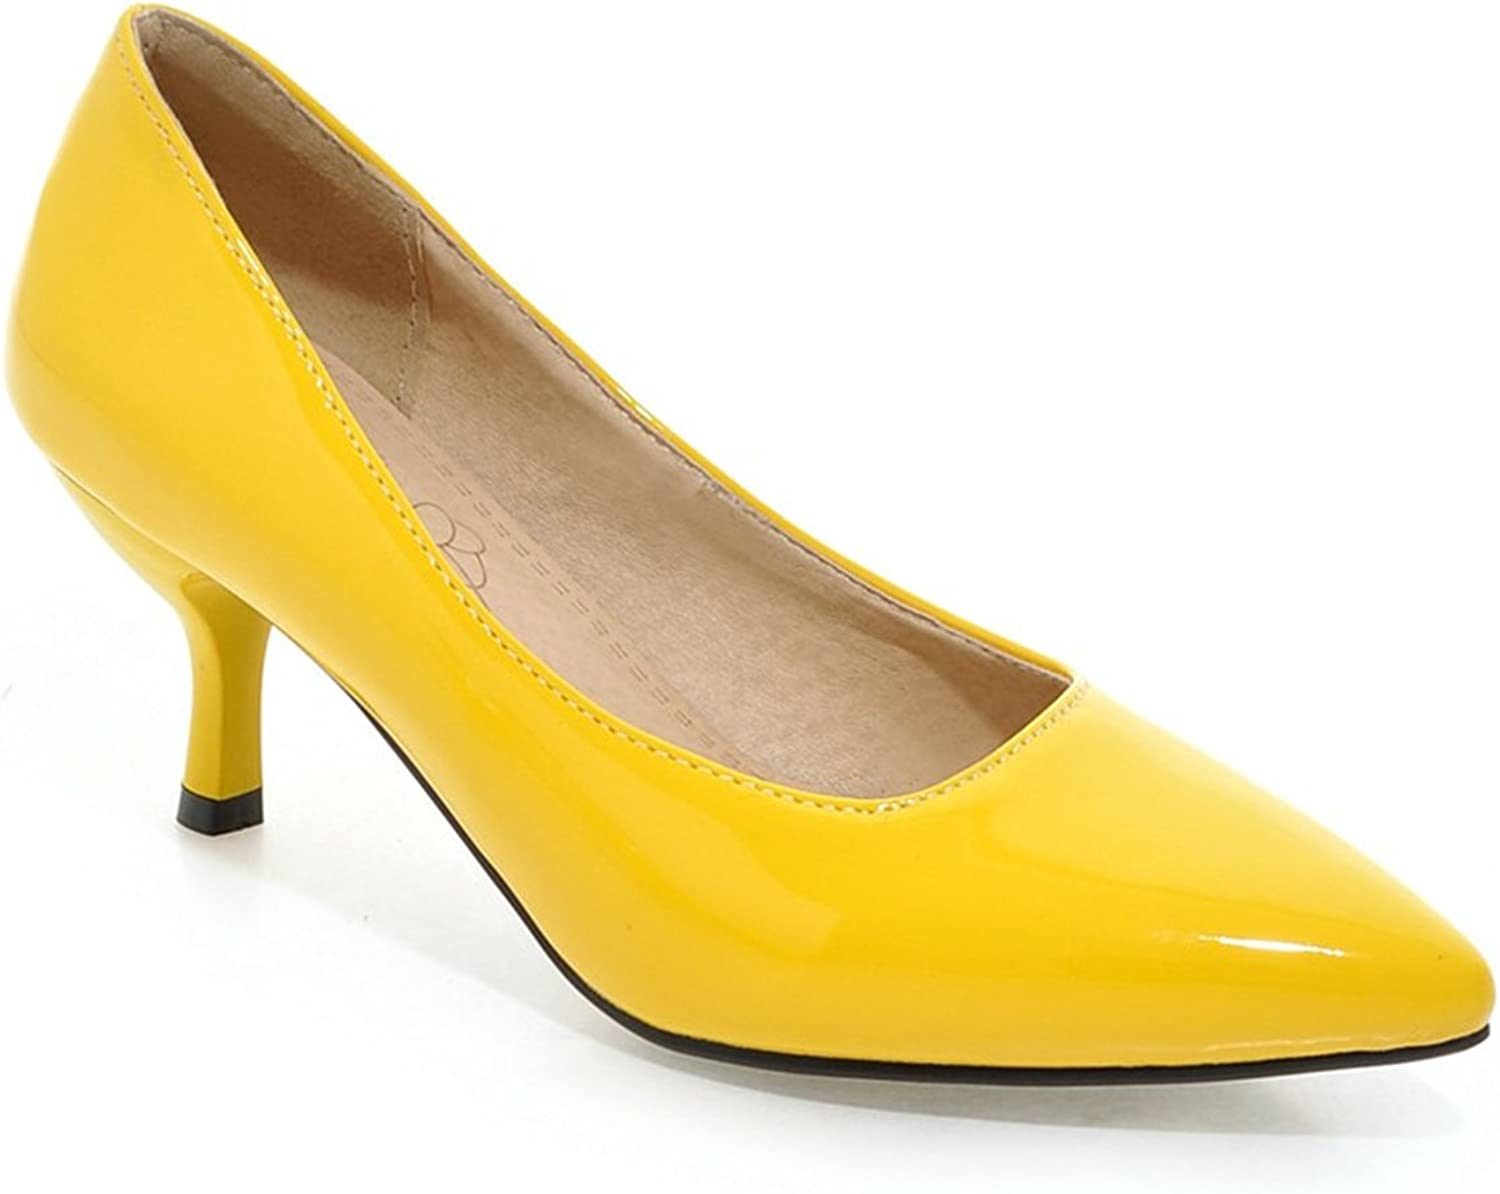 New Hot 8 color Glossy Women Nude Formal Pumps Big Size 12 30 48 Yellow bluee Red Green Med Heels Sexy Lady Wedding shoes